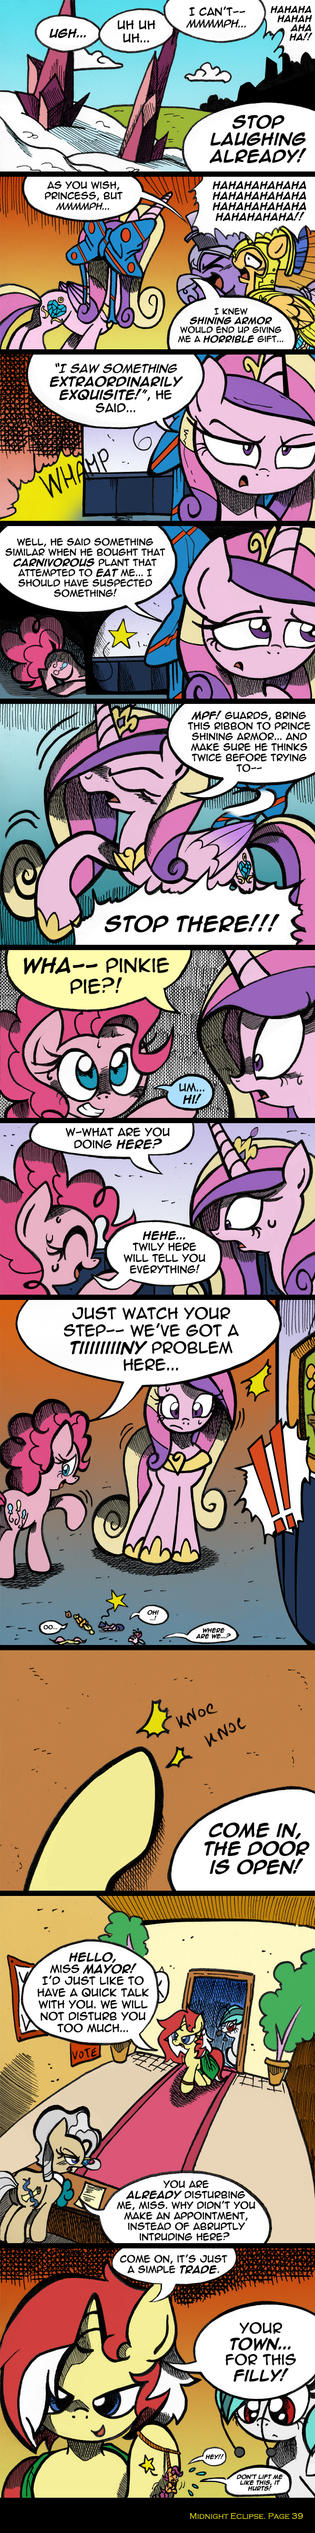 Midnight Eclipse - Page 39 by labba94